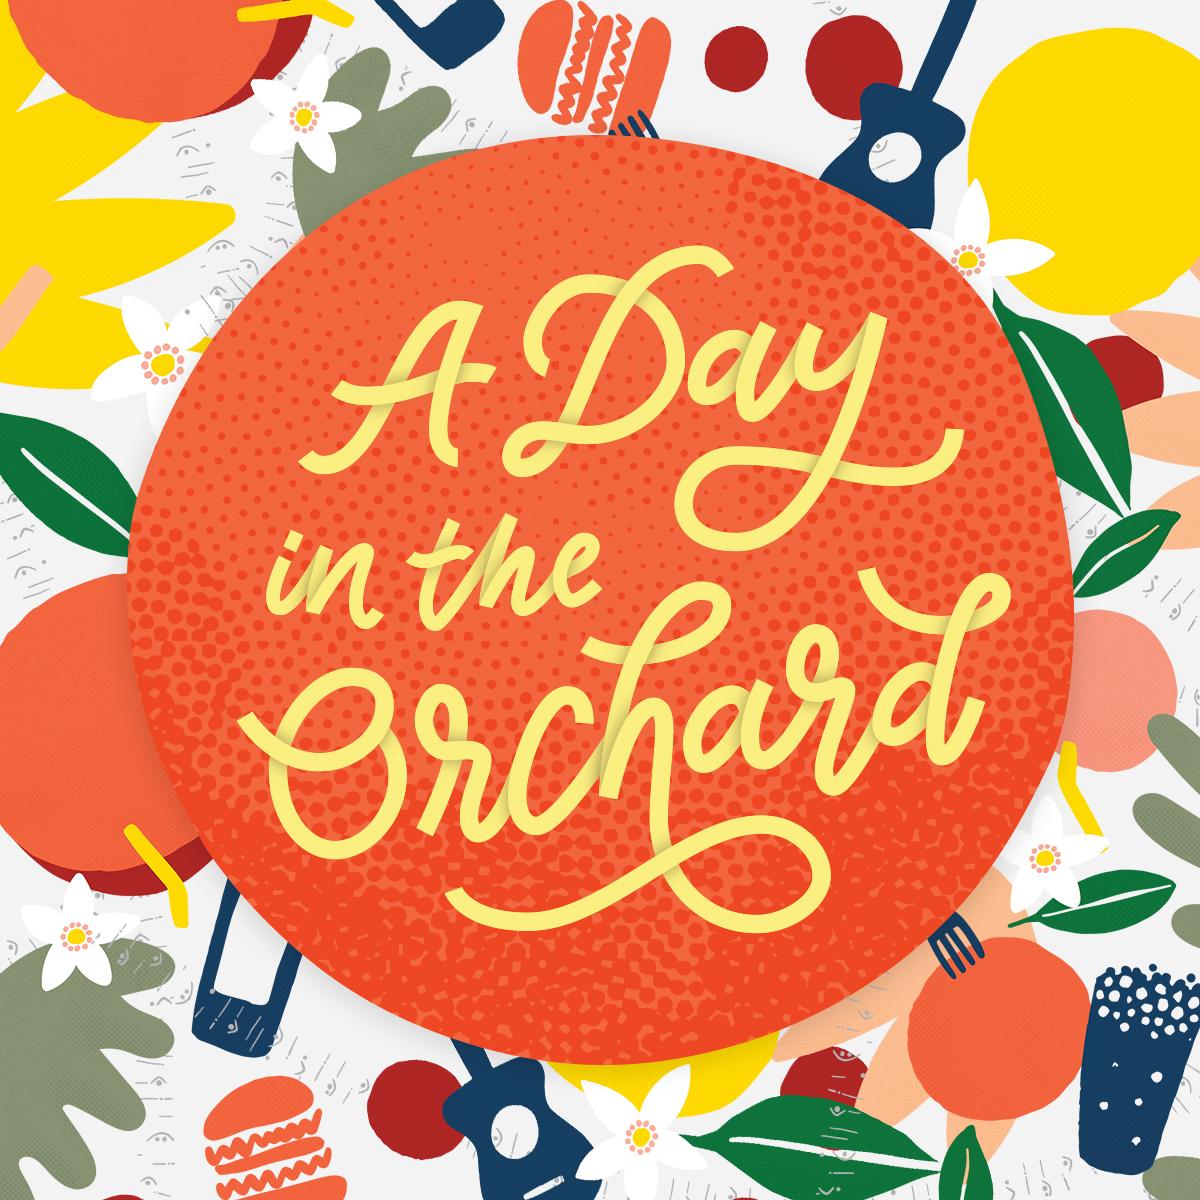 A Day in the Orchard